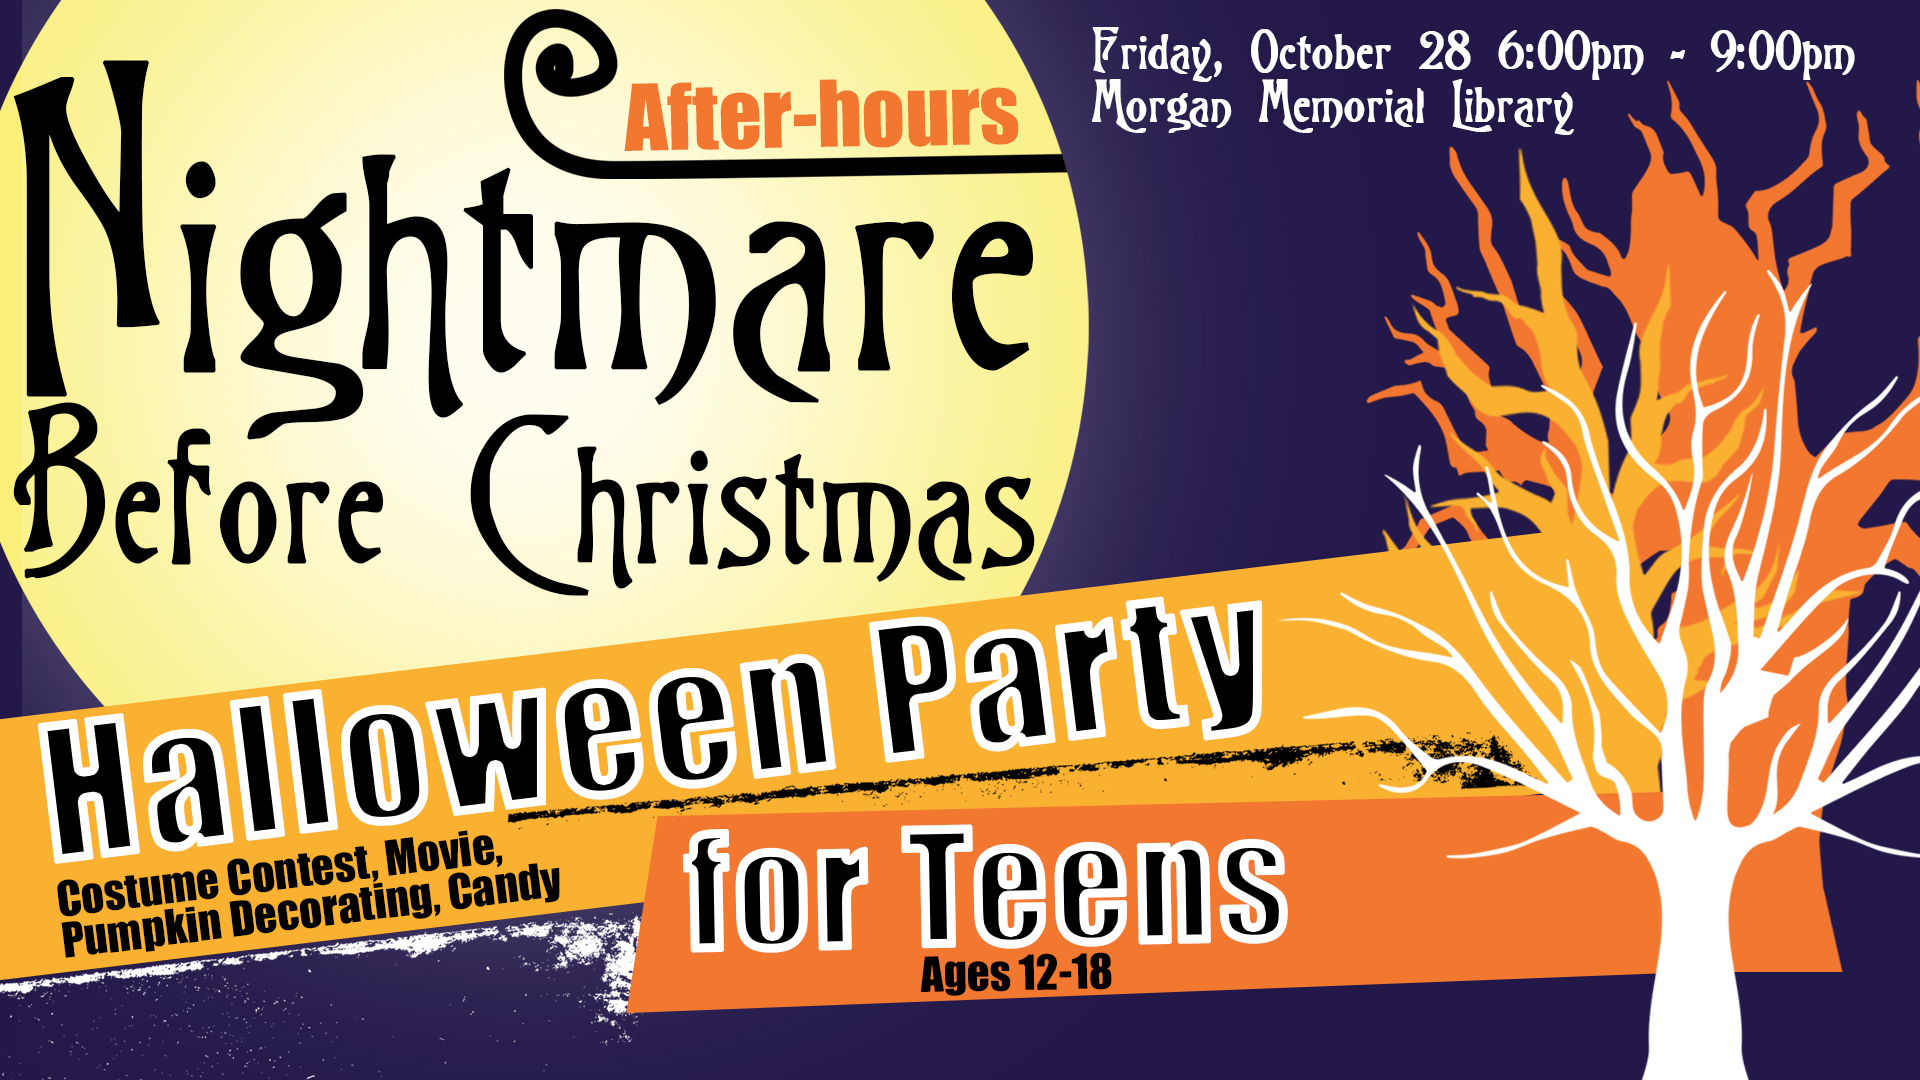 After-hours Nightmare Before Christmas Party for Teens | Events in ...